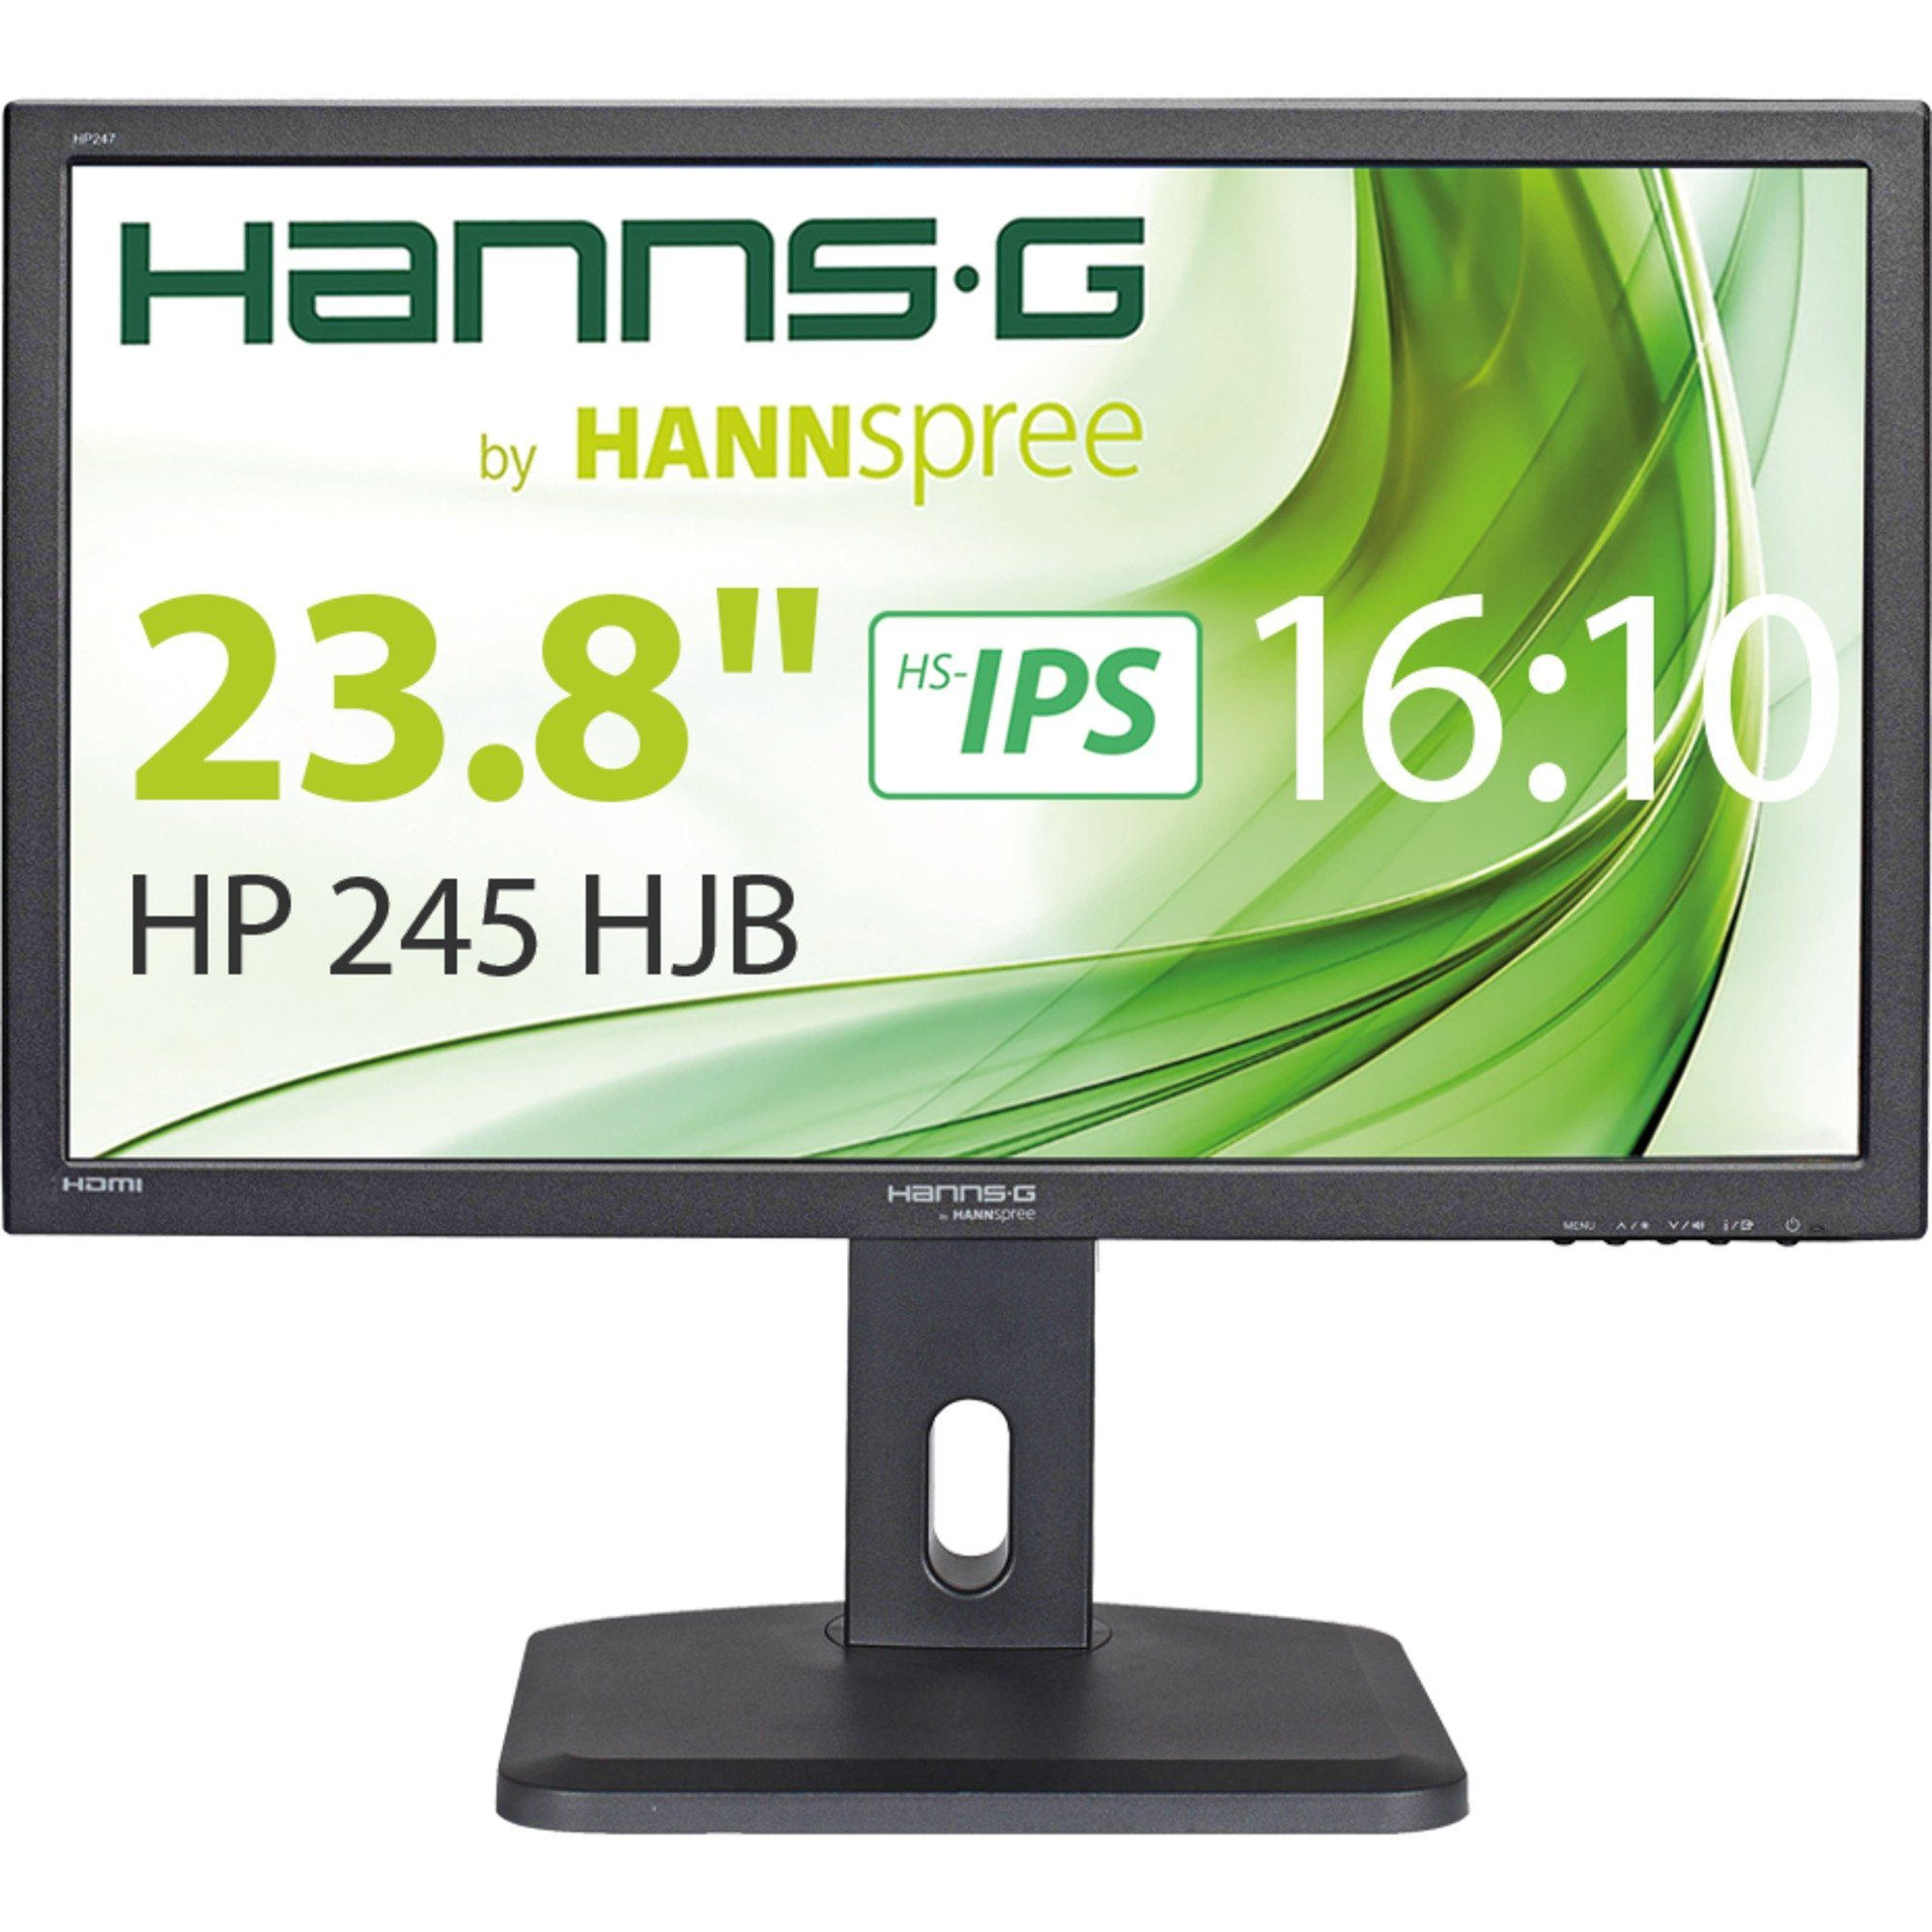 HannsG LED-Monitor »HP245HJB«